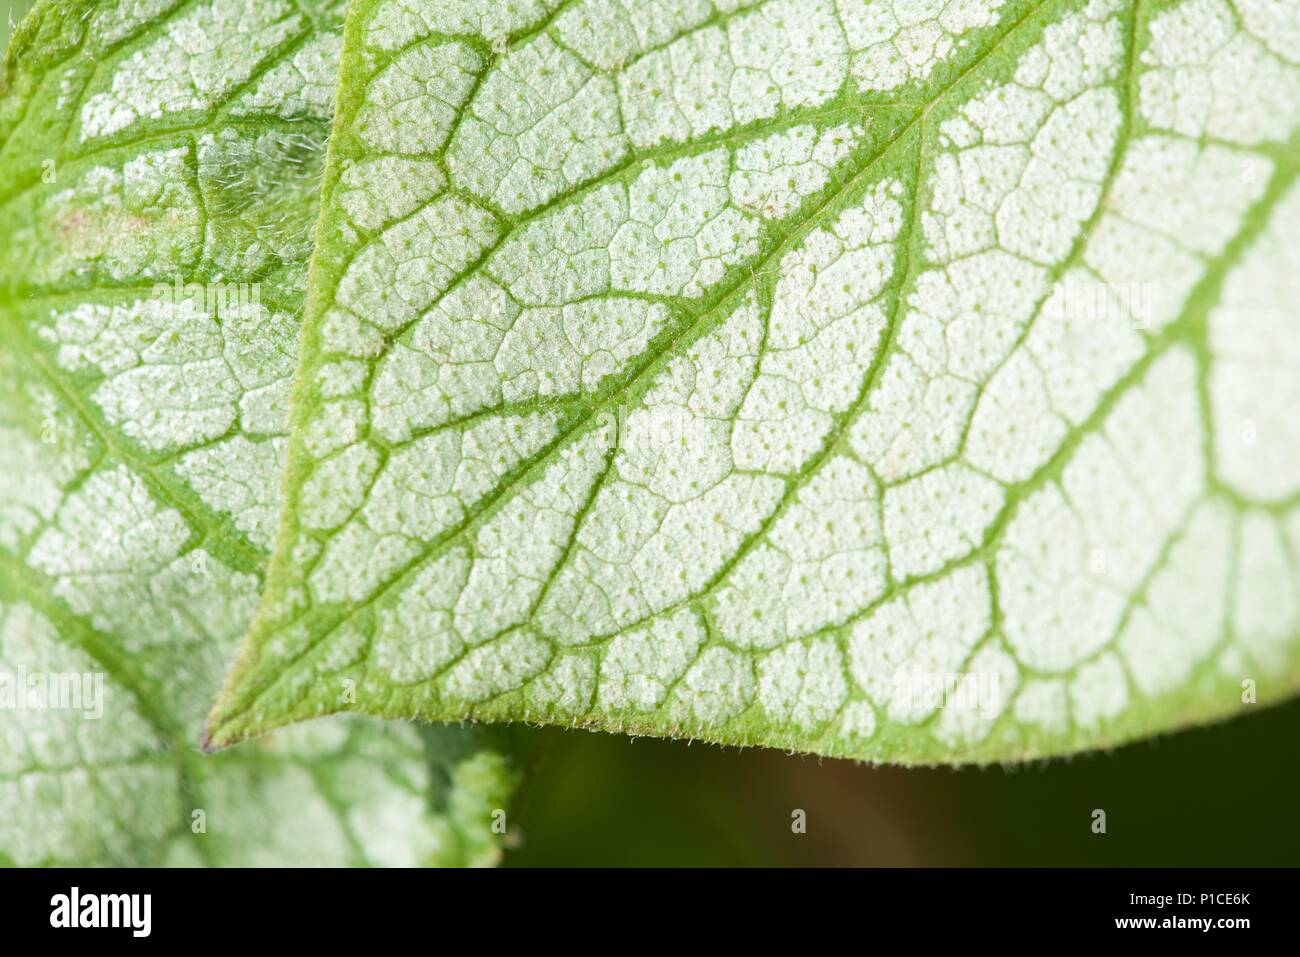 Lungwort (Pulmonaria): a close up on the patterning of leaves - Stock Image